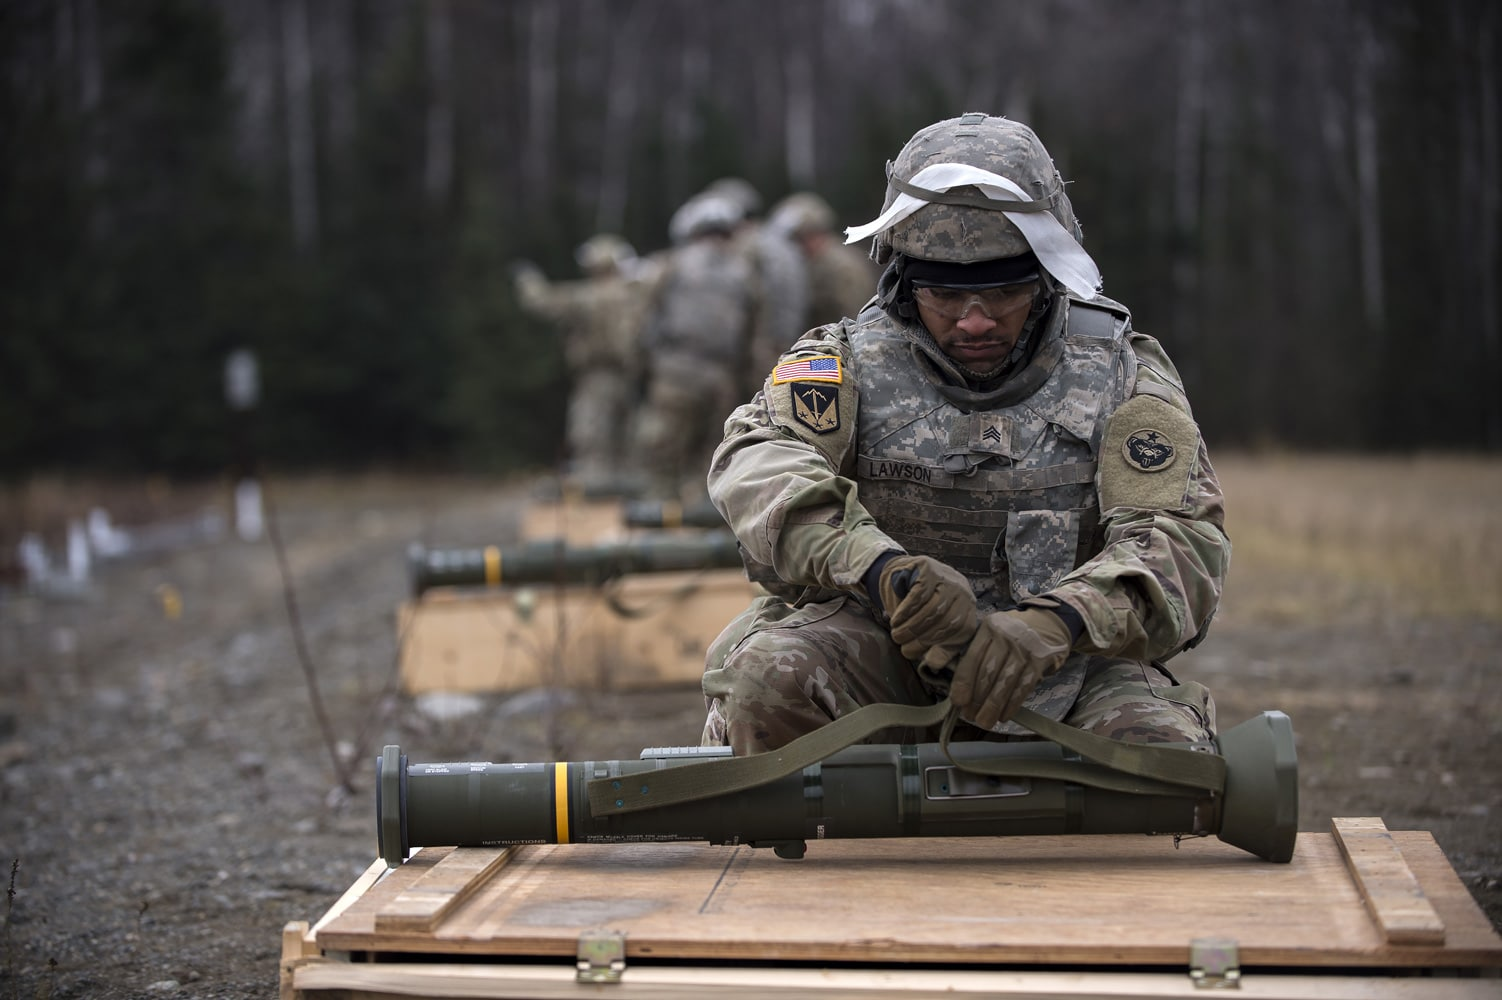 Army Sgt. Derek Lawson, assigned to the 109th Transportation Company, 17th Combat Sustainment Support Battalion, U.S. Army Alaska, prepares a M136E1 AT4-CS confined space light anti-armor weapon for firing at Joint Base Elmendorf-Richardson, Alaska.